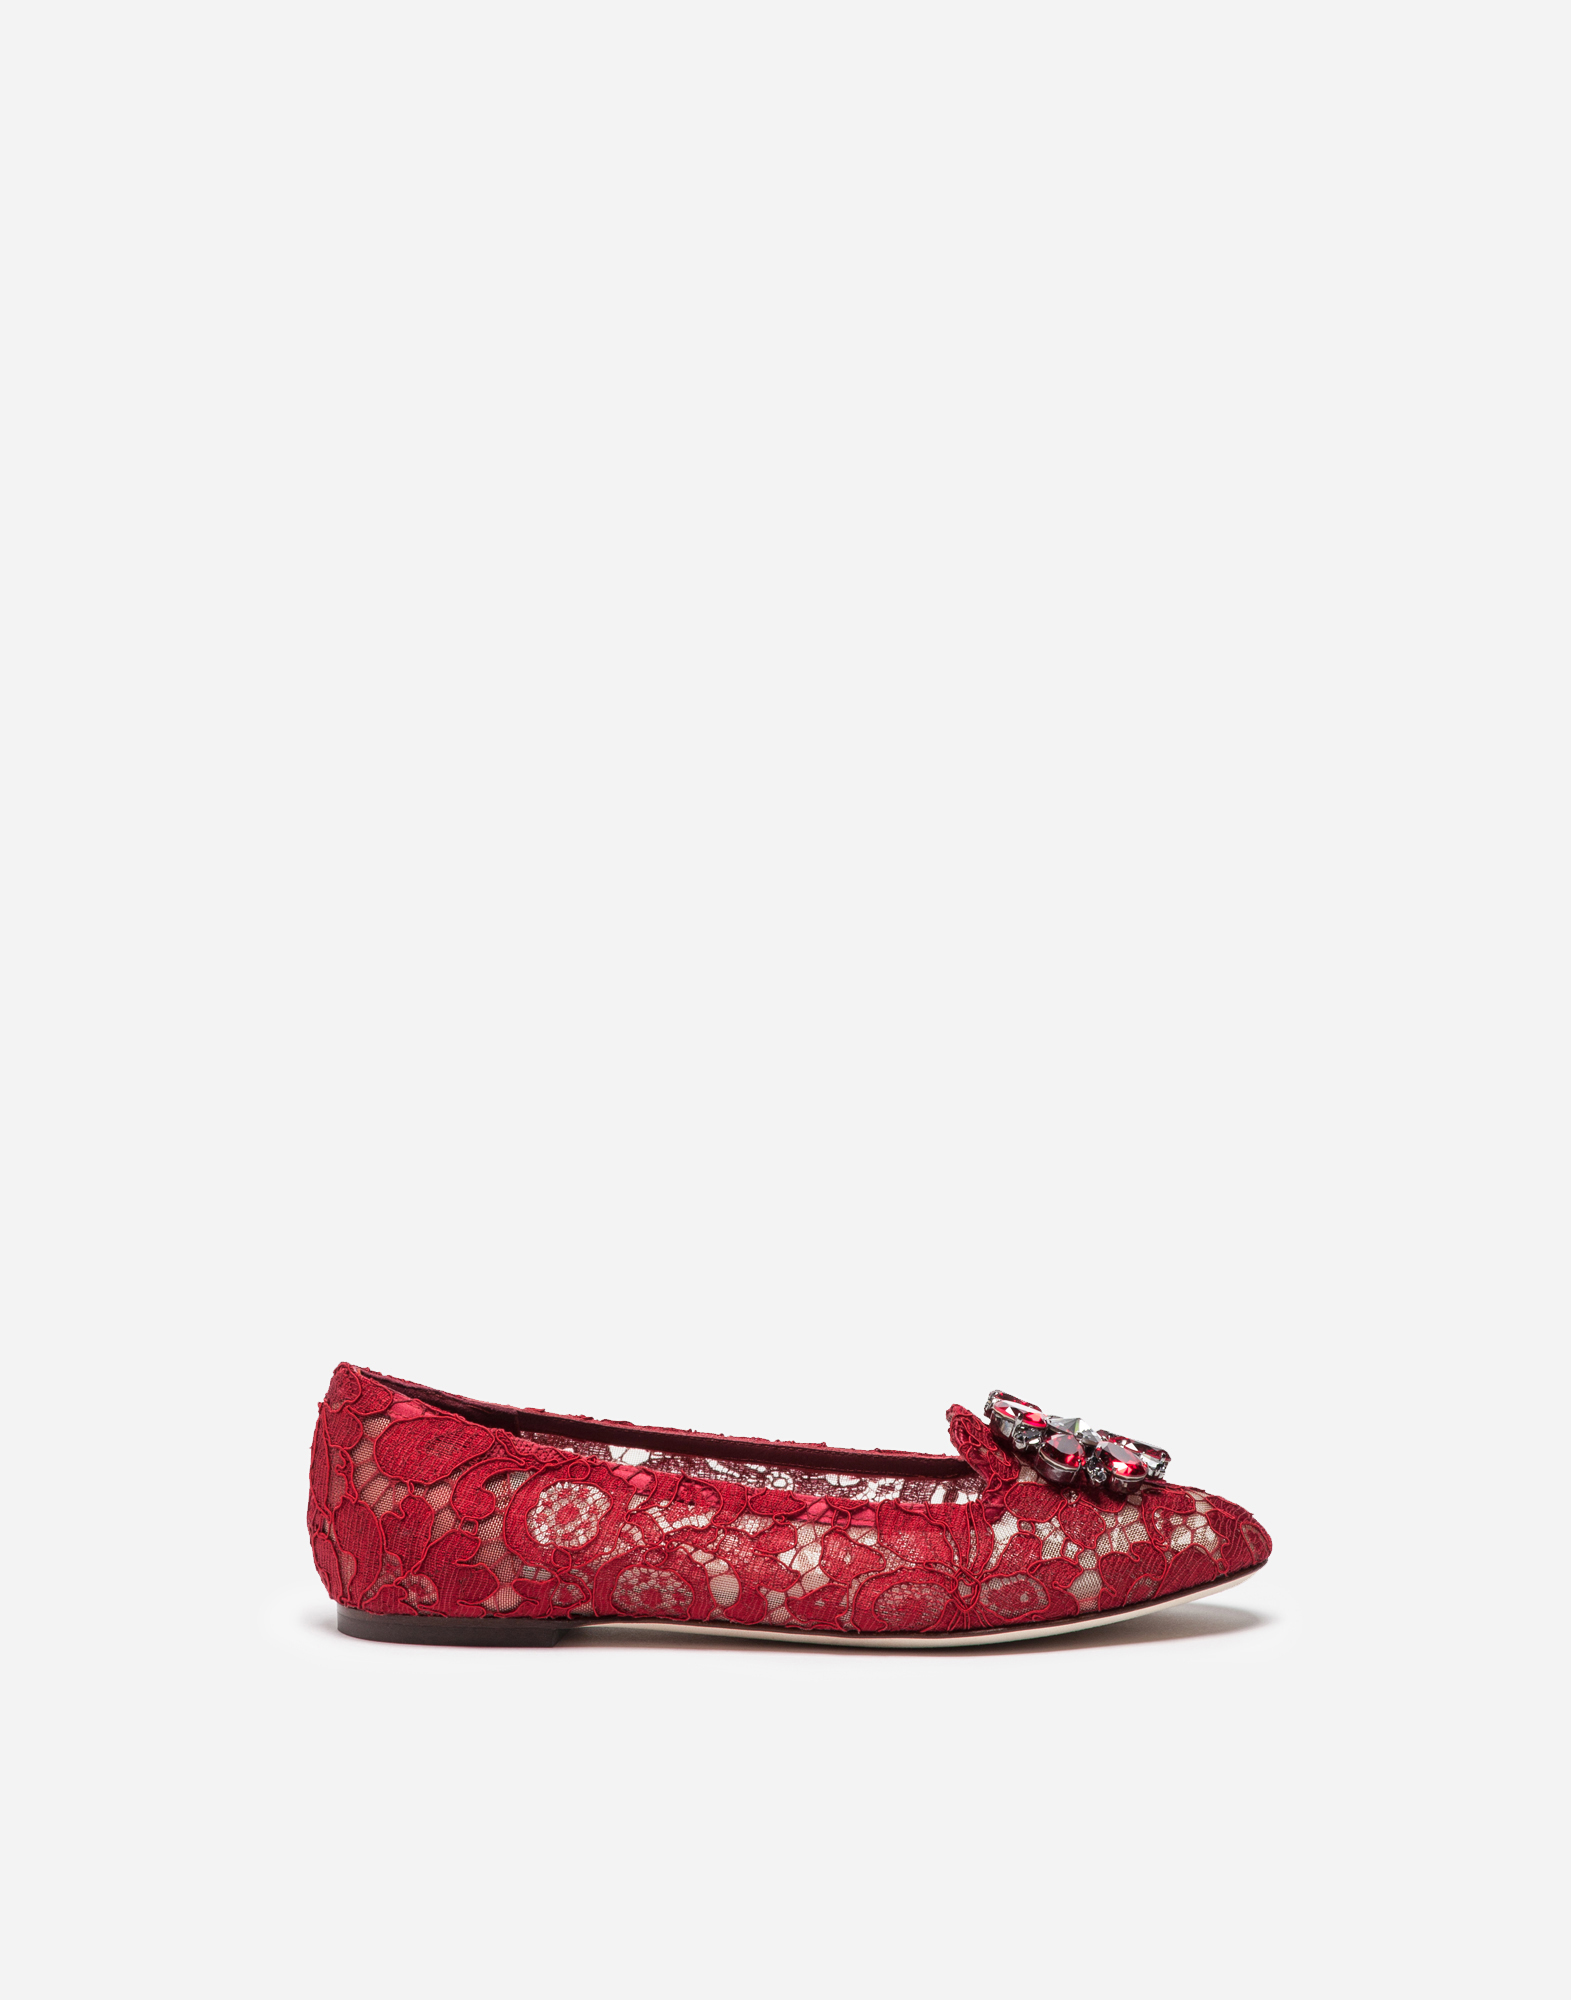 Dolce & Gabbana SLIPPER IN TAORMINA LACE WITH CRYSTALS